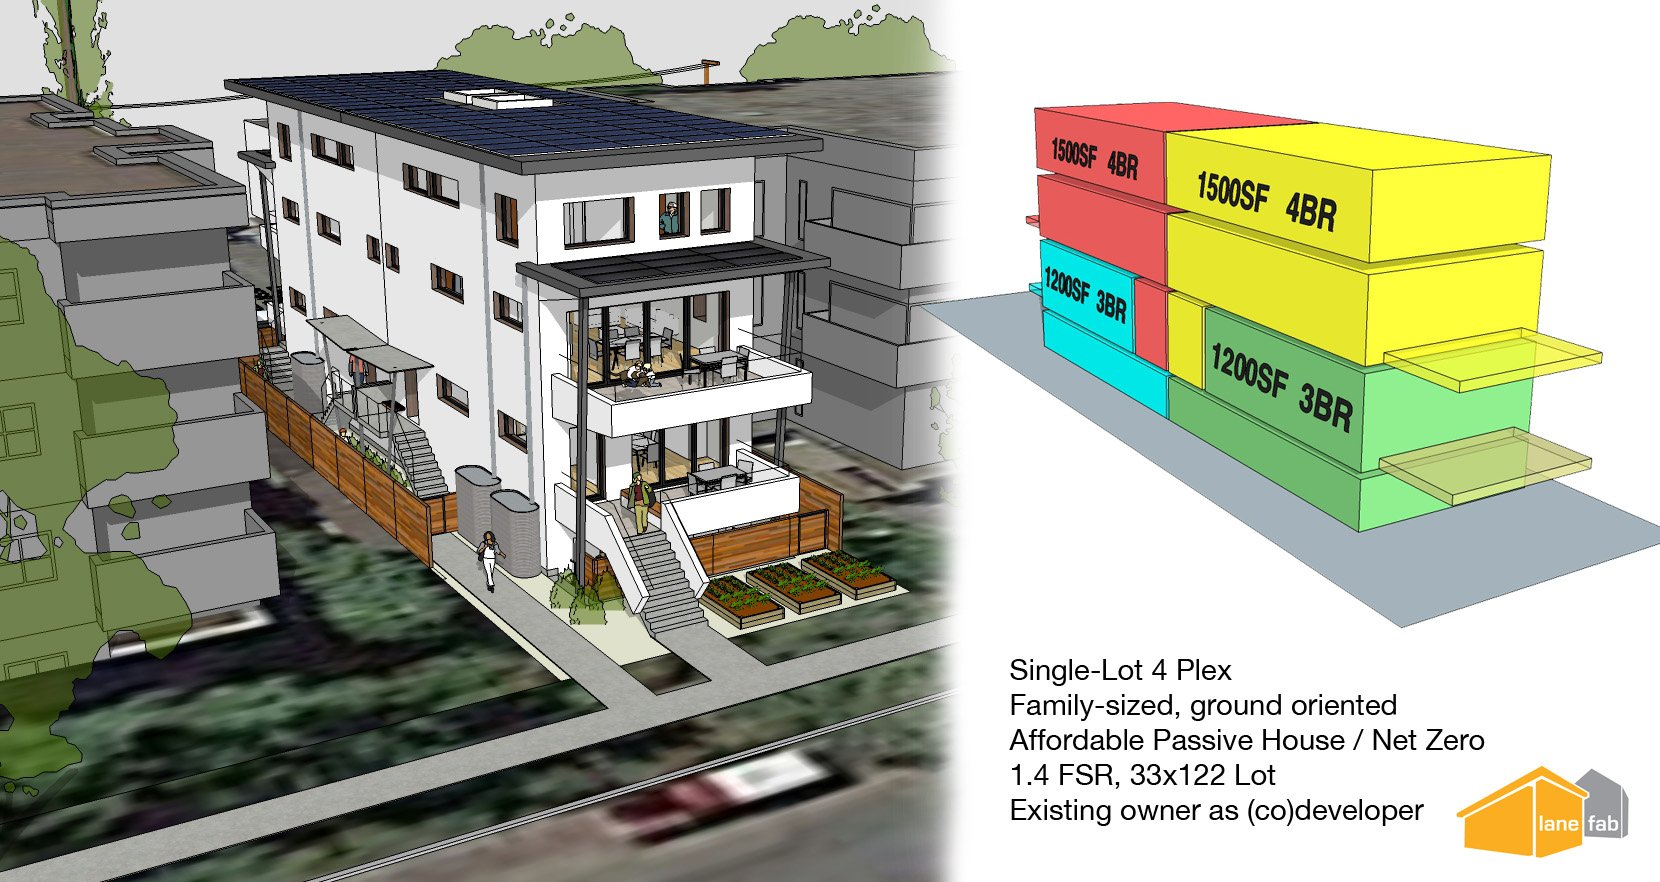 With a few relaxations our existing RM apartment zones could support single-lot-development projects like this proposal from Lanefab.